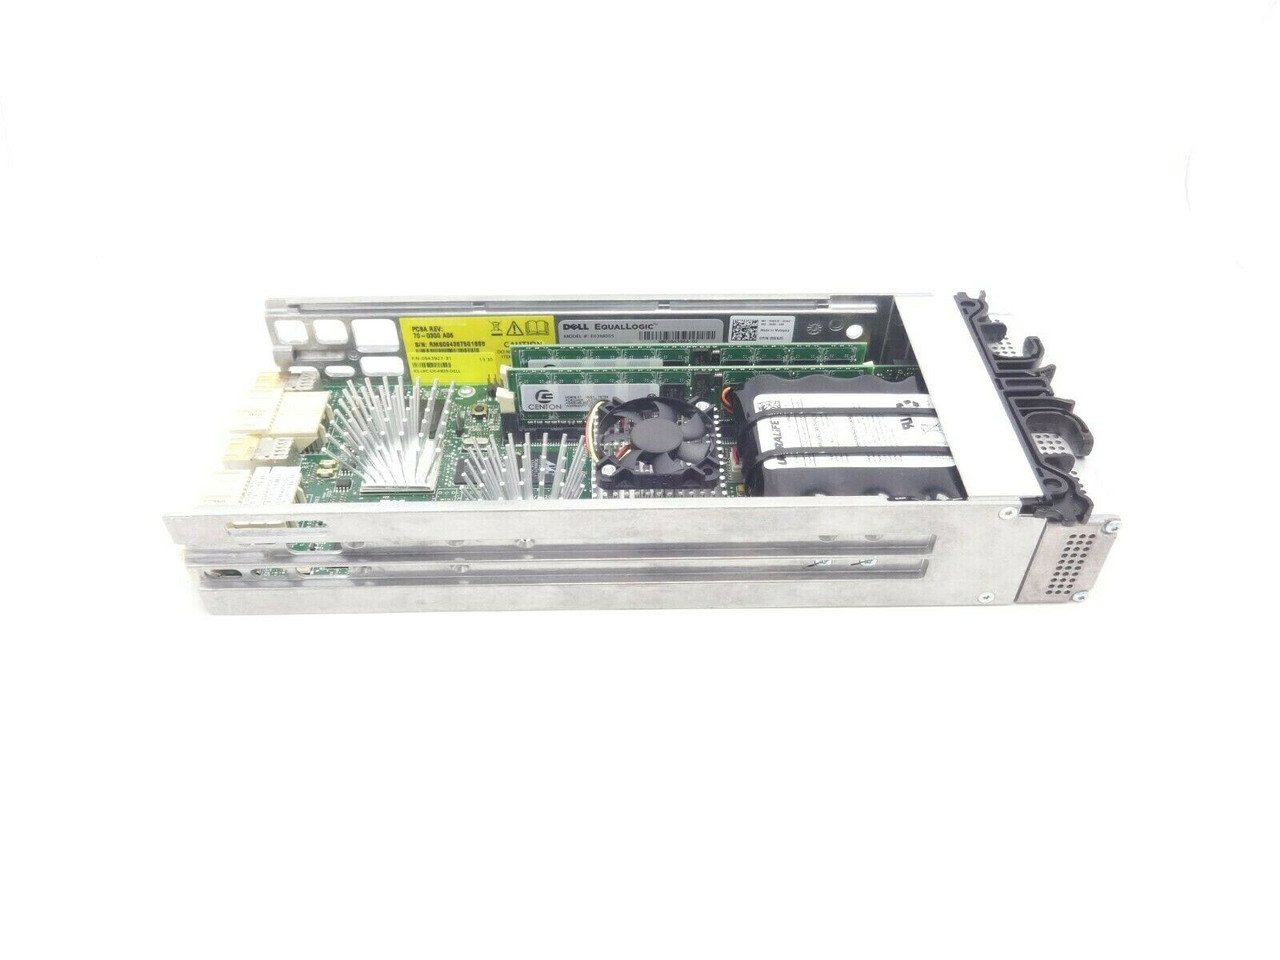 Dell 0G9J5 Equallogic Type 10 Controller 10GB Cache PS6010 PS6510